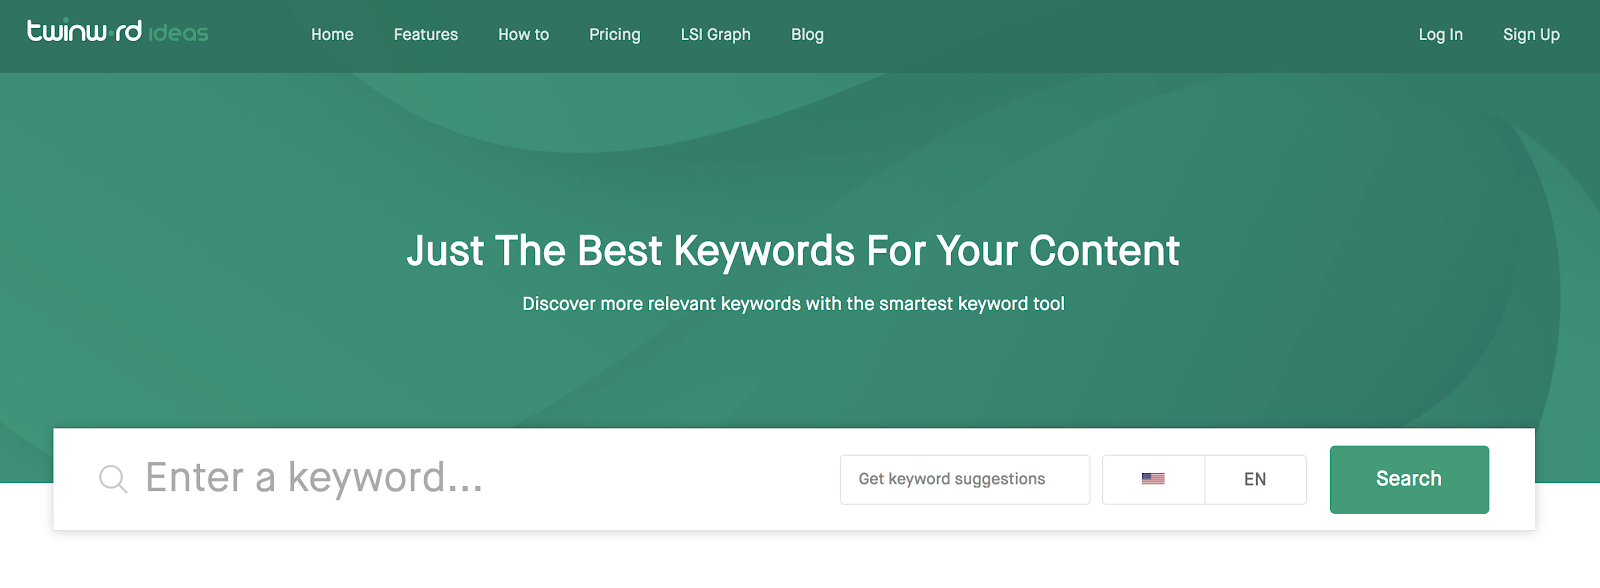 Twinword Ideas Keyword Research Tool (Homepage Screenshot)